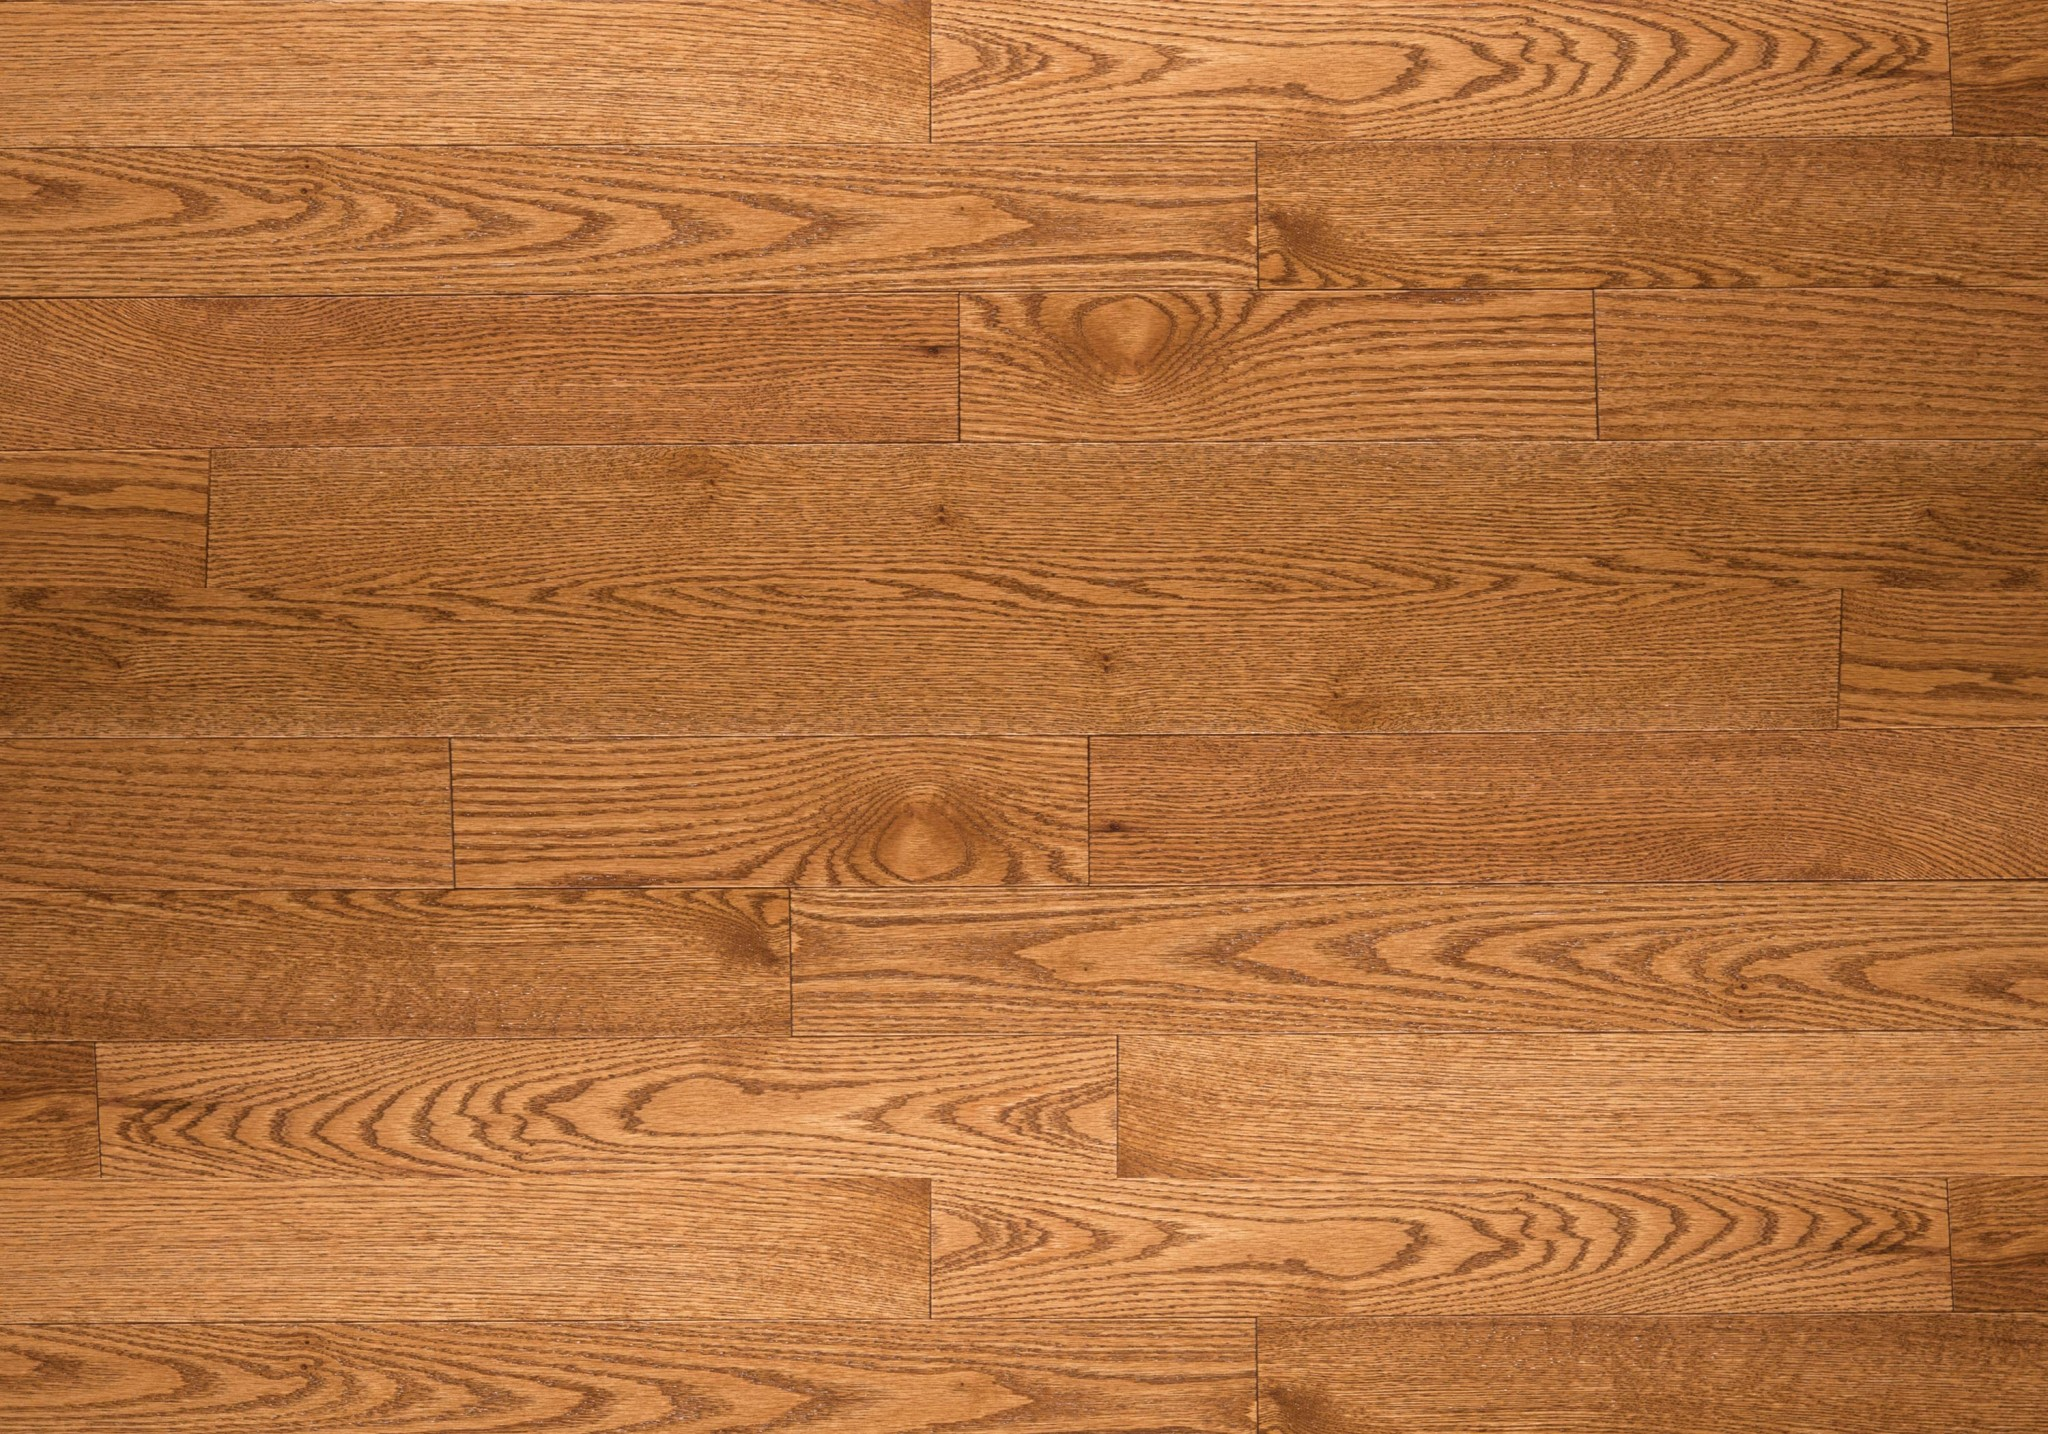 Sahara ambiance red oak pacific exclusive lauzon for Red oak hardwood flooring